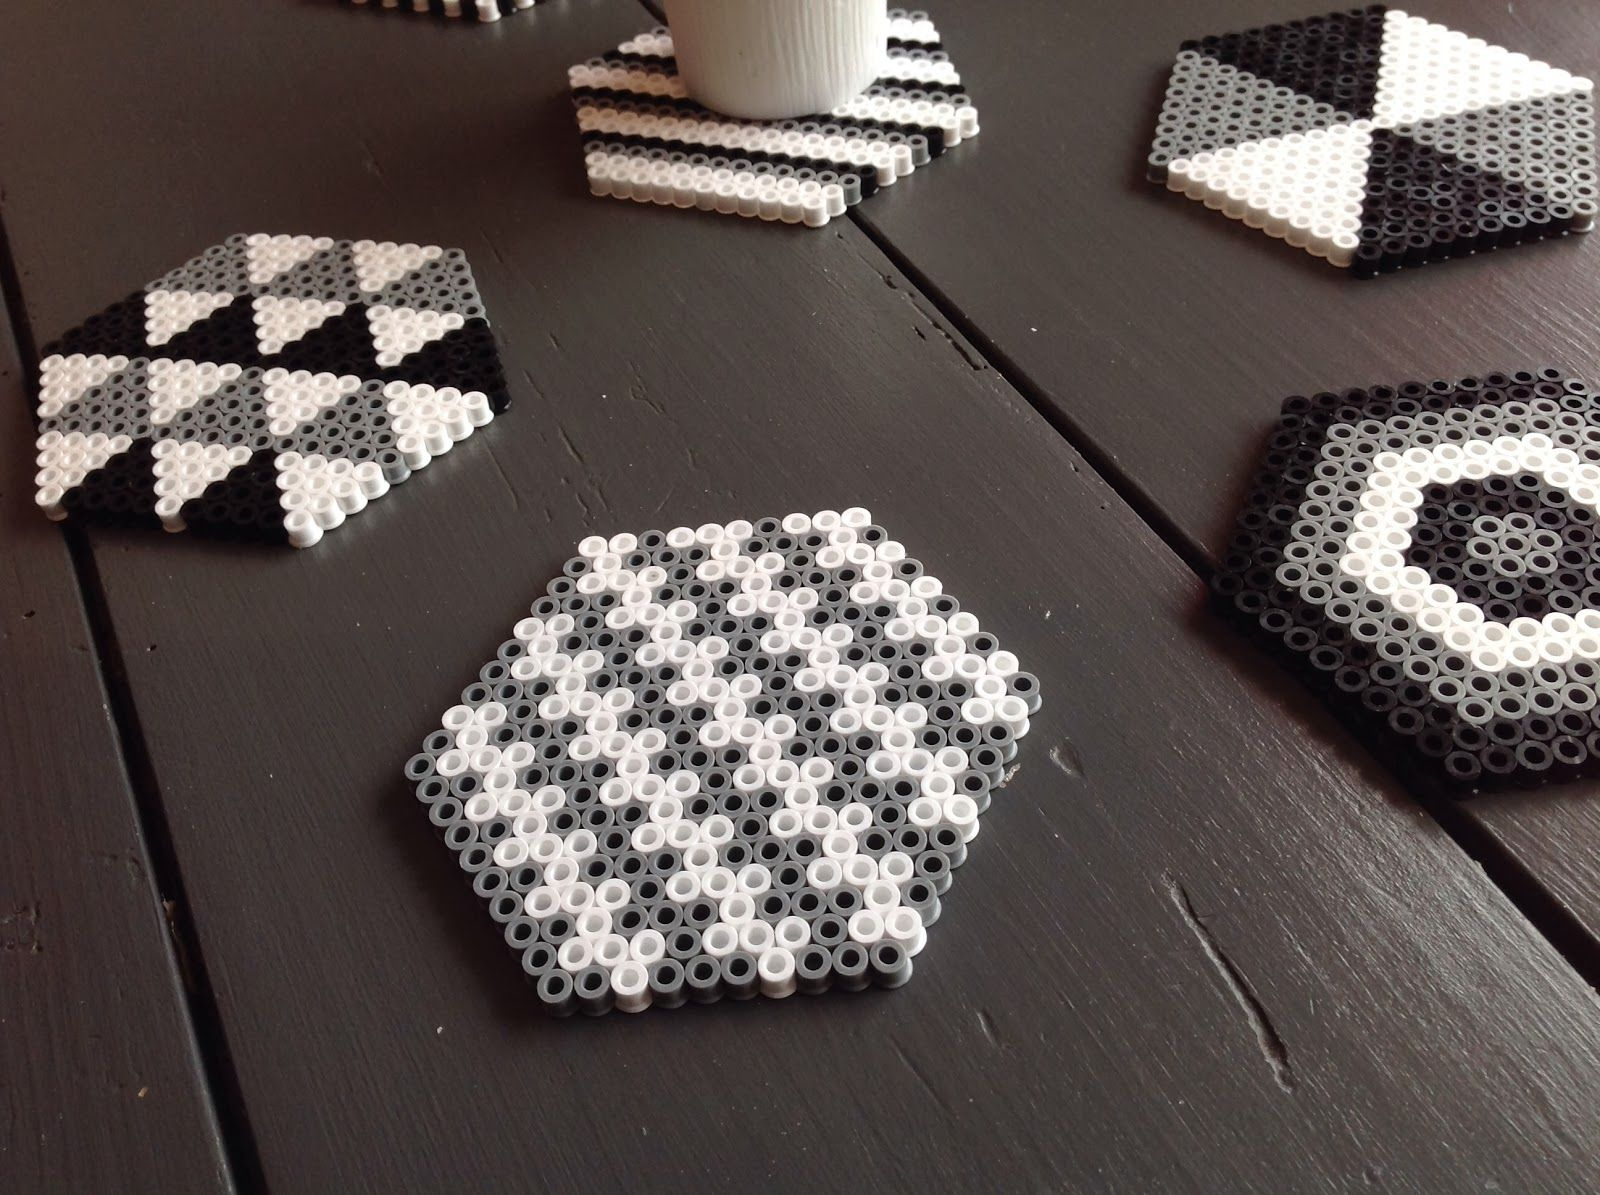 blog parenthese creative ln diy dessous de verre perles hama d co pinterest perles hama. Black Bedroom Furniture Sets. Home Design Ideas